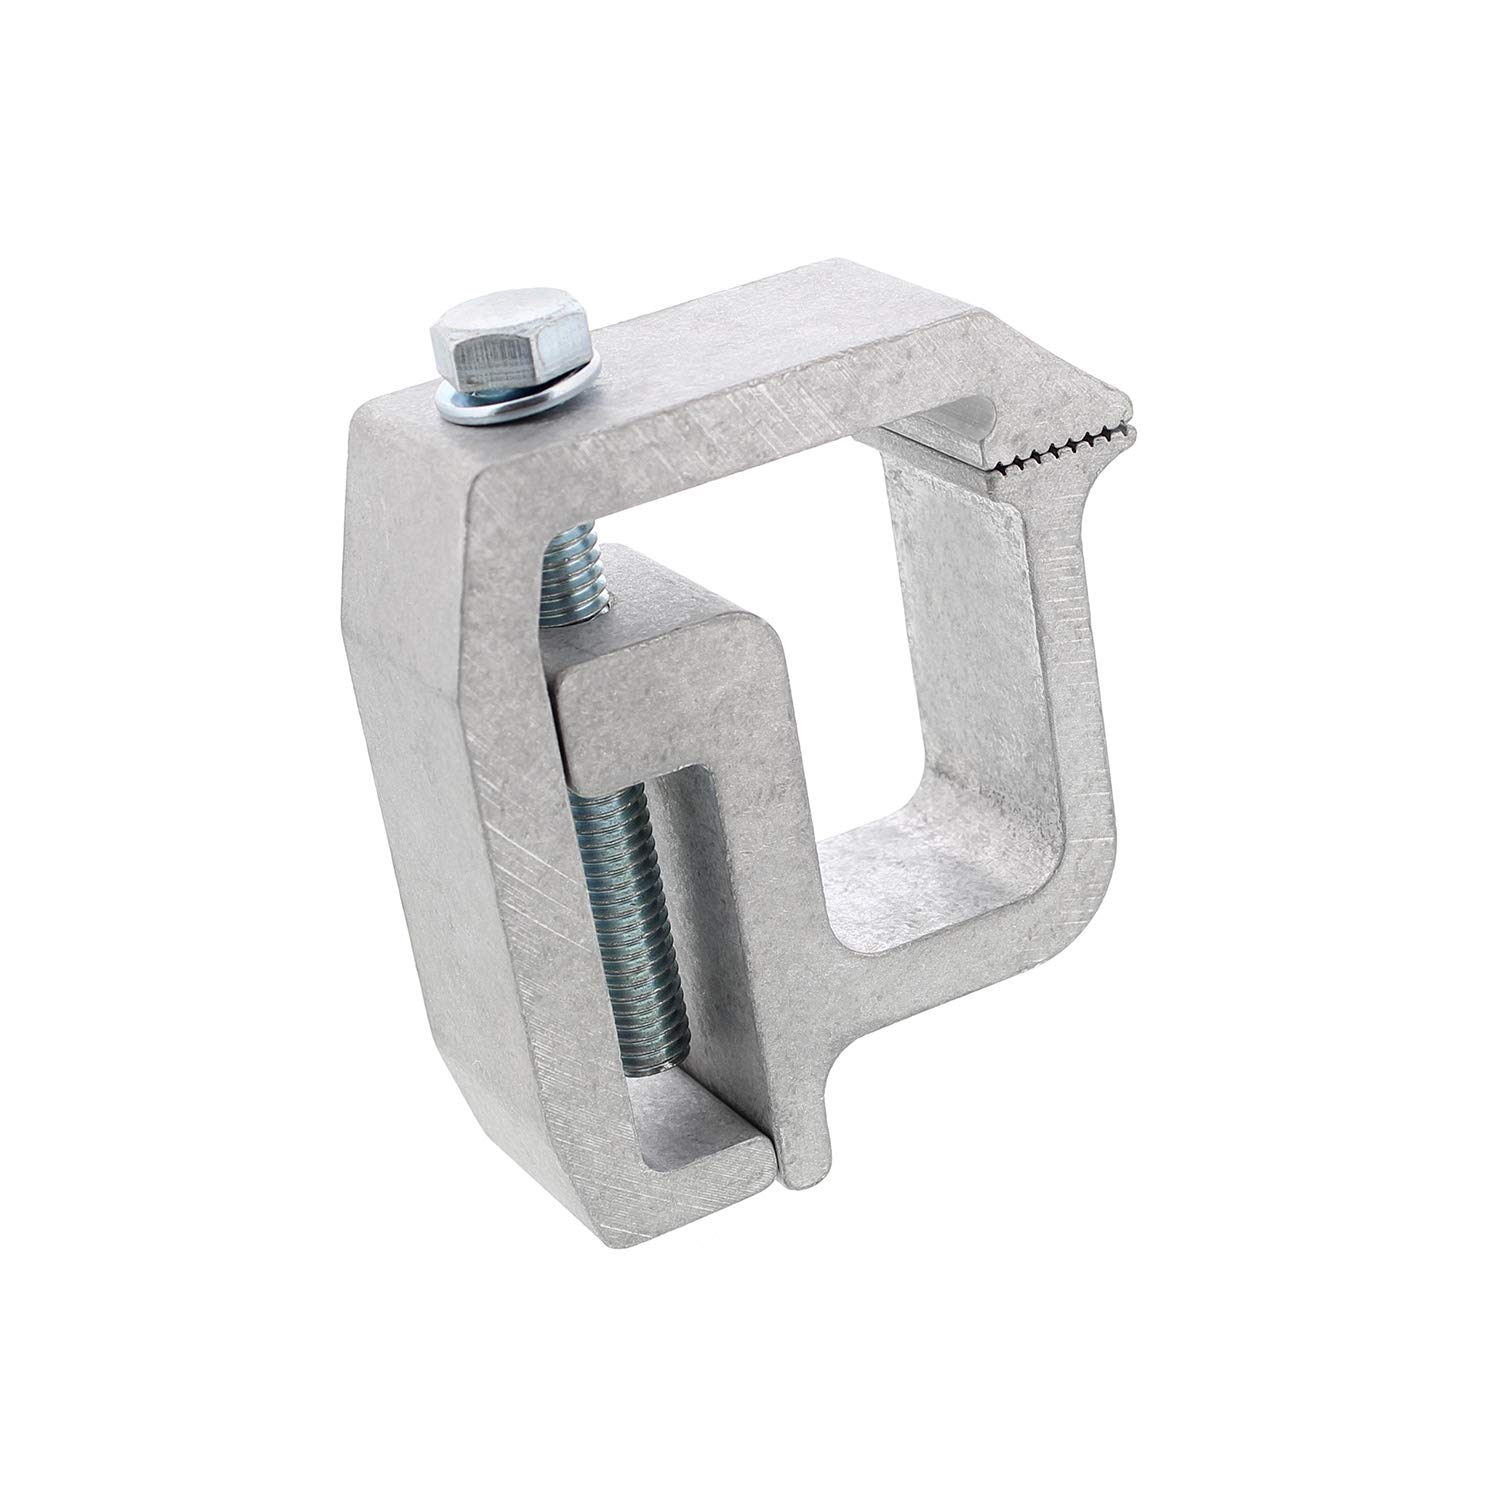 Single Truck Cap Mounting Clamp for Truck Bed Rack and Truck Canopy Brackets ABN Truck Topper Clamp 1 Piece